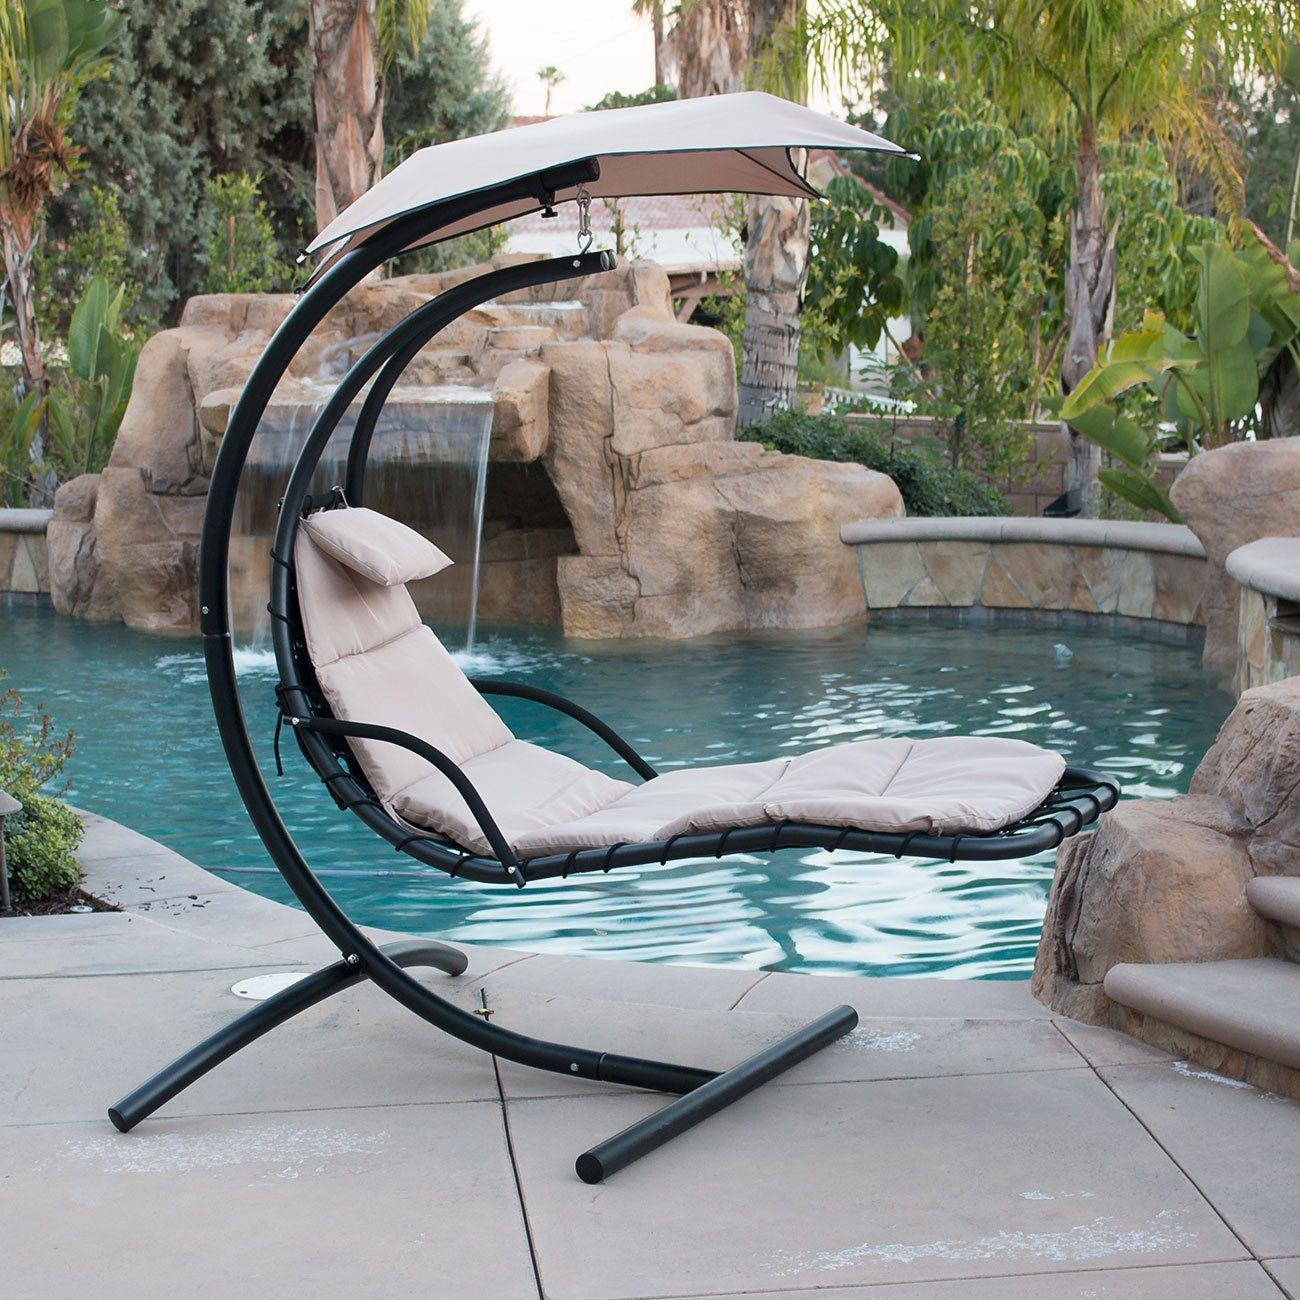 Hanging Helicopter Dream Lounger Chair Arc Stand Swing Hammock Chair Canopy  Tan In Home U0026 Garden, Yard, Garden U0026 Outdoor Living, Patio U0026 Garden  Furniture, ...